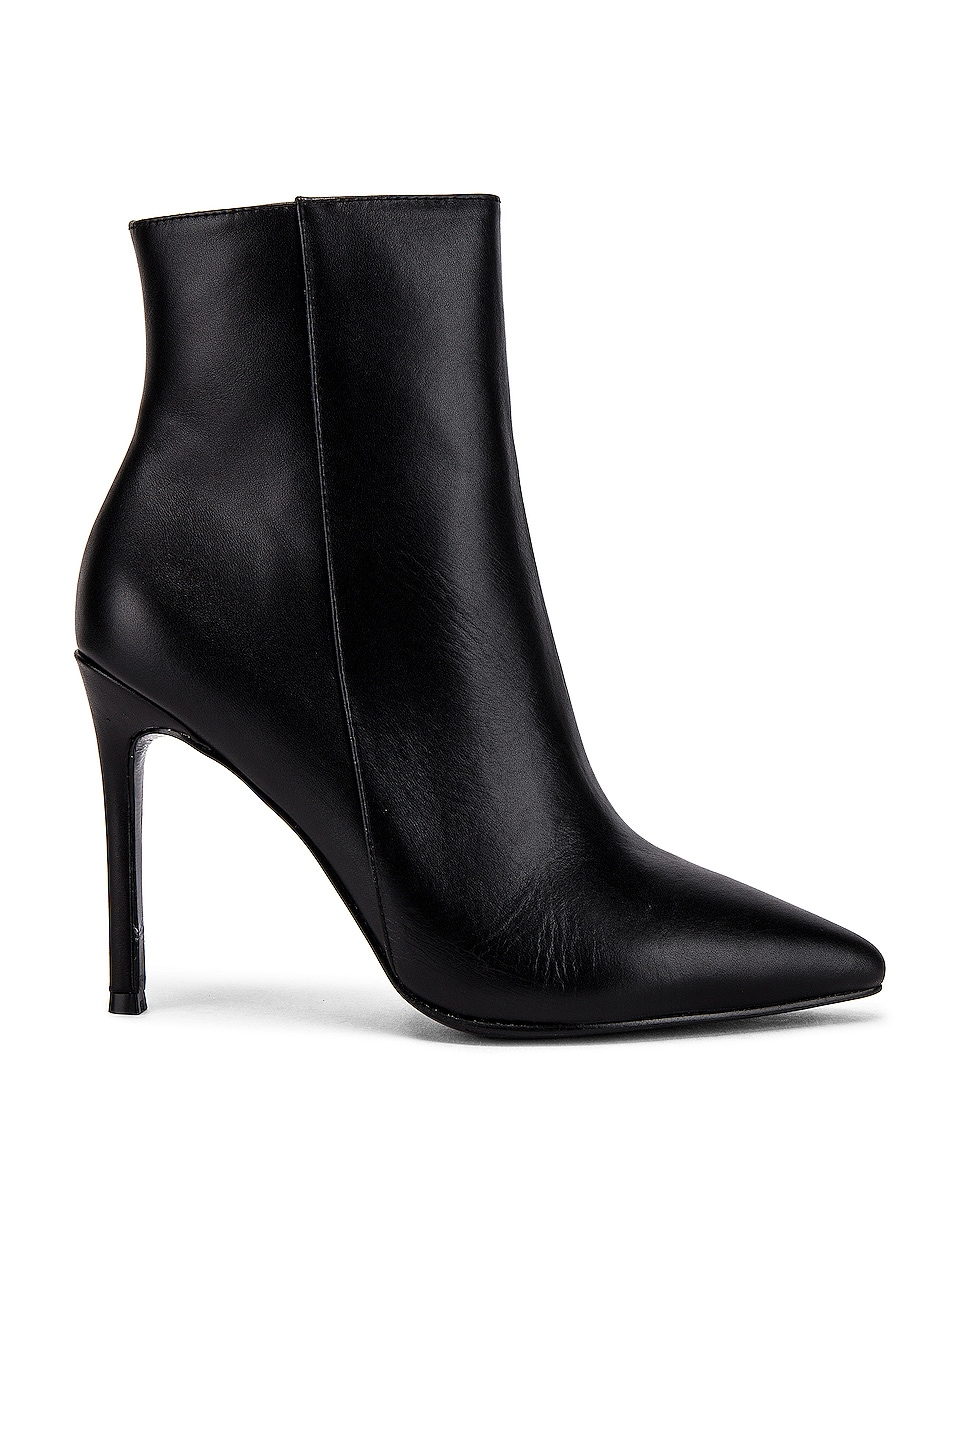 RAYE Zepplin Bootie in Black